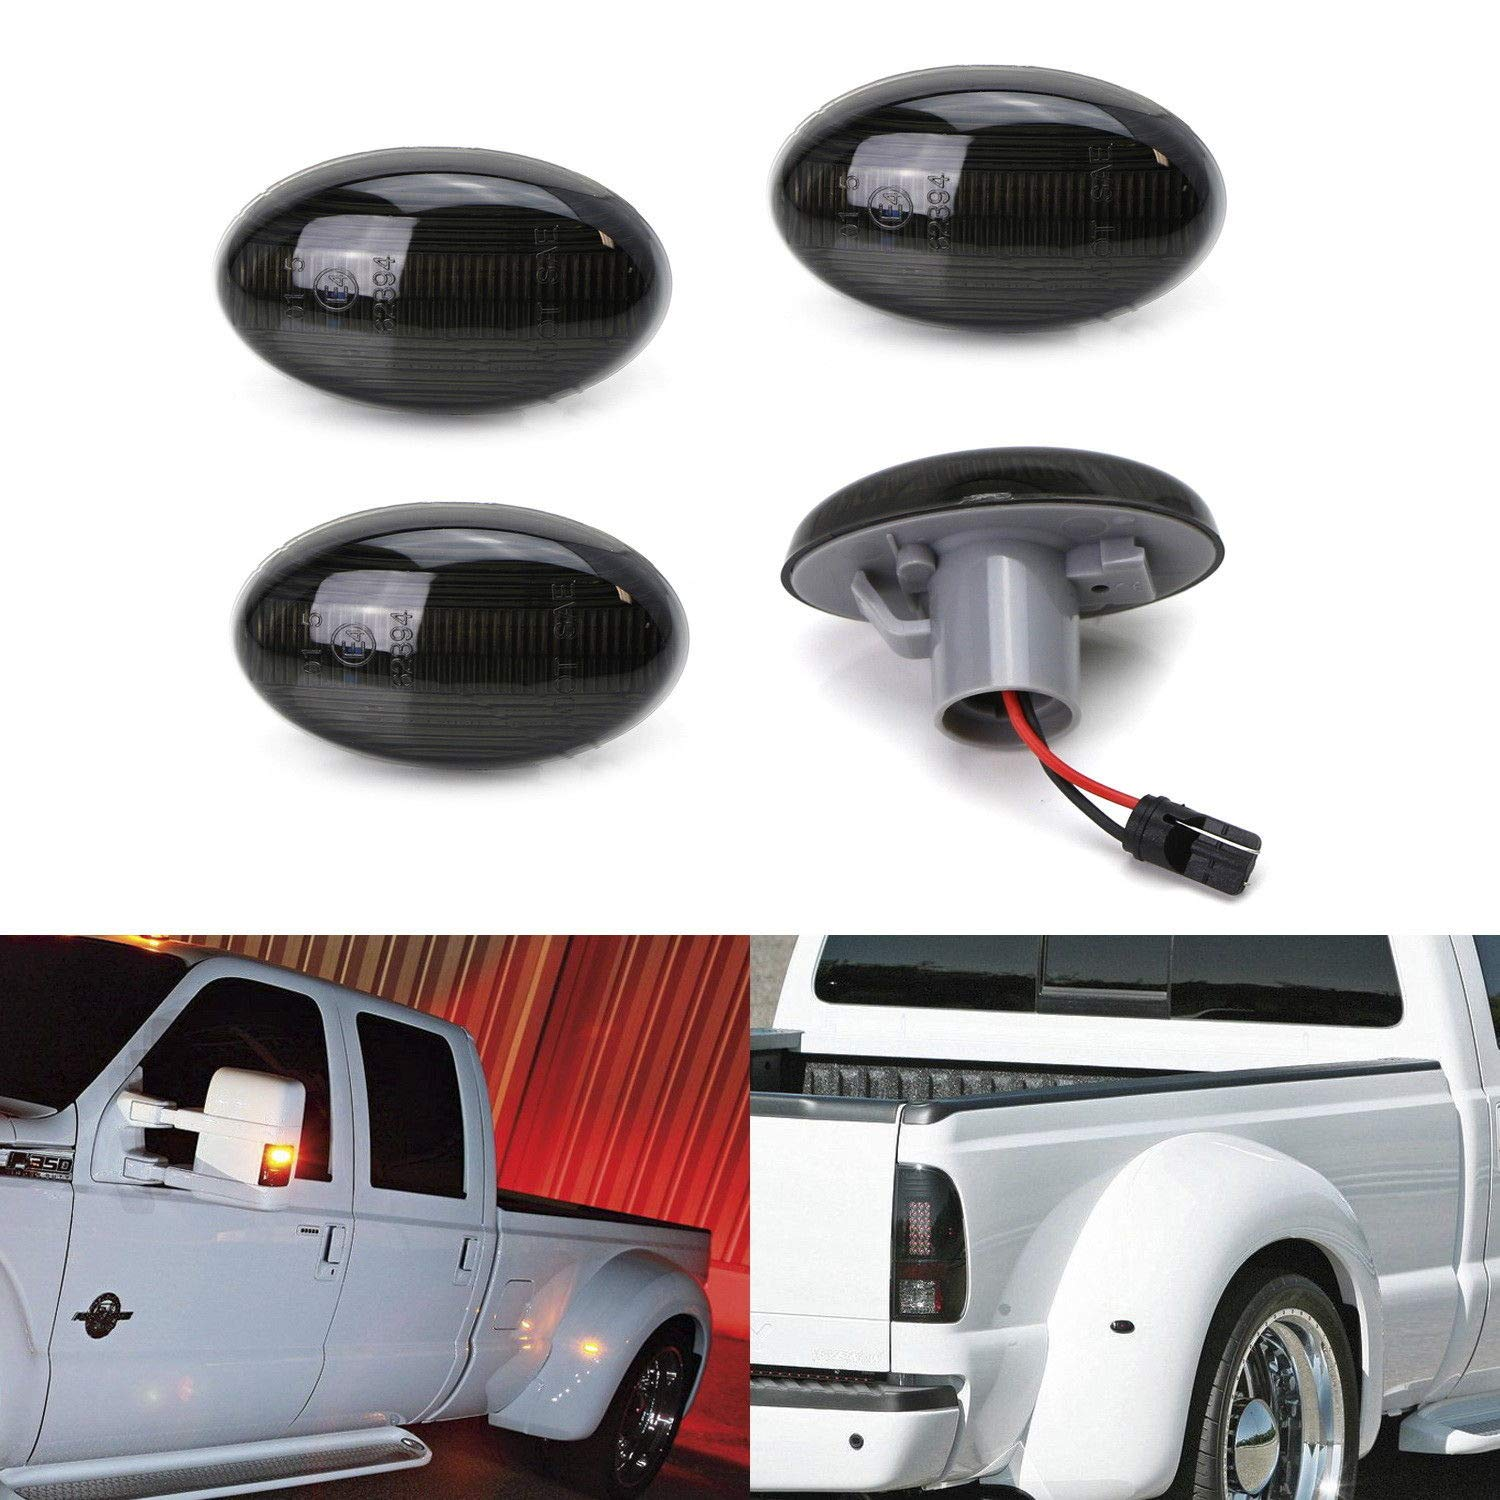 iJDMTOY Smoked Lens Amber/Red Full LED Trunk Bed Marker Lights Set For 1999-2010 Ford F350 F450 Super Duty Truck Double Wheel Side Fenders, Powered by Total 48 LED iJDMTOY Auto Accessories Rear Bed Fender Side Reflector LED Lamps